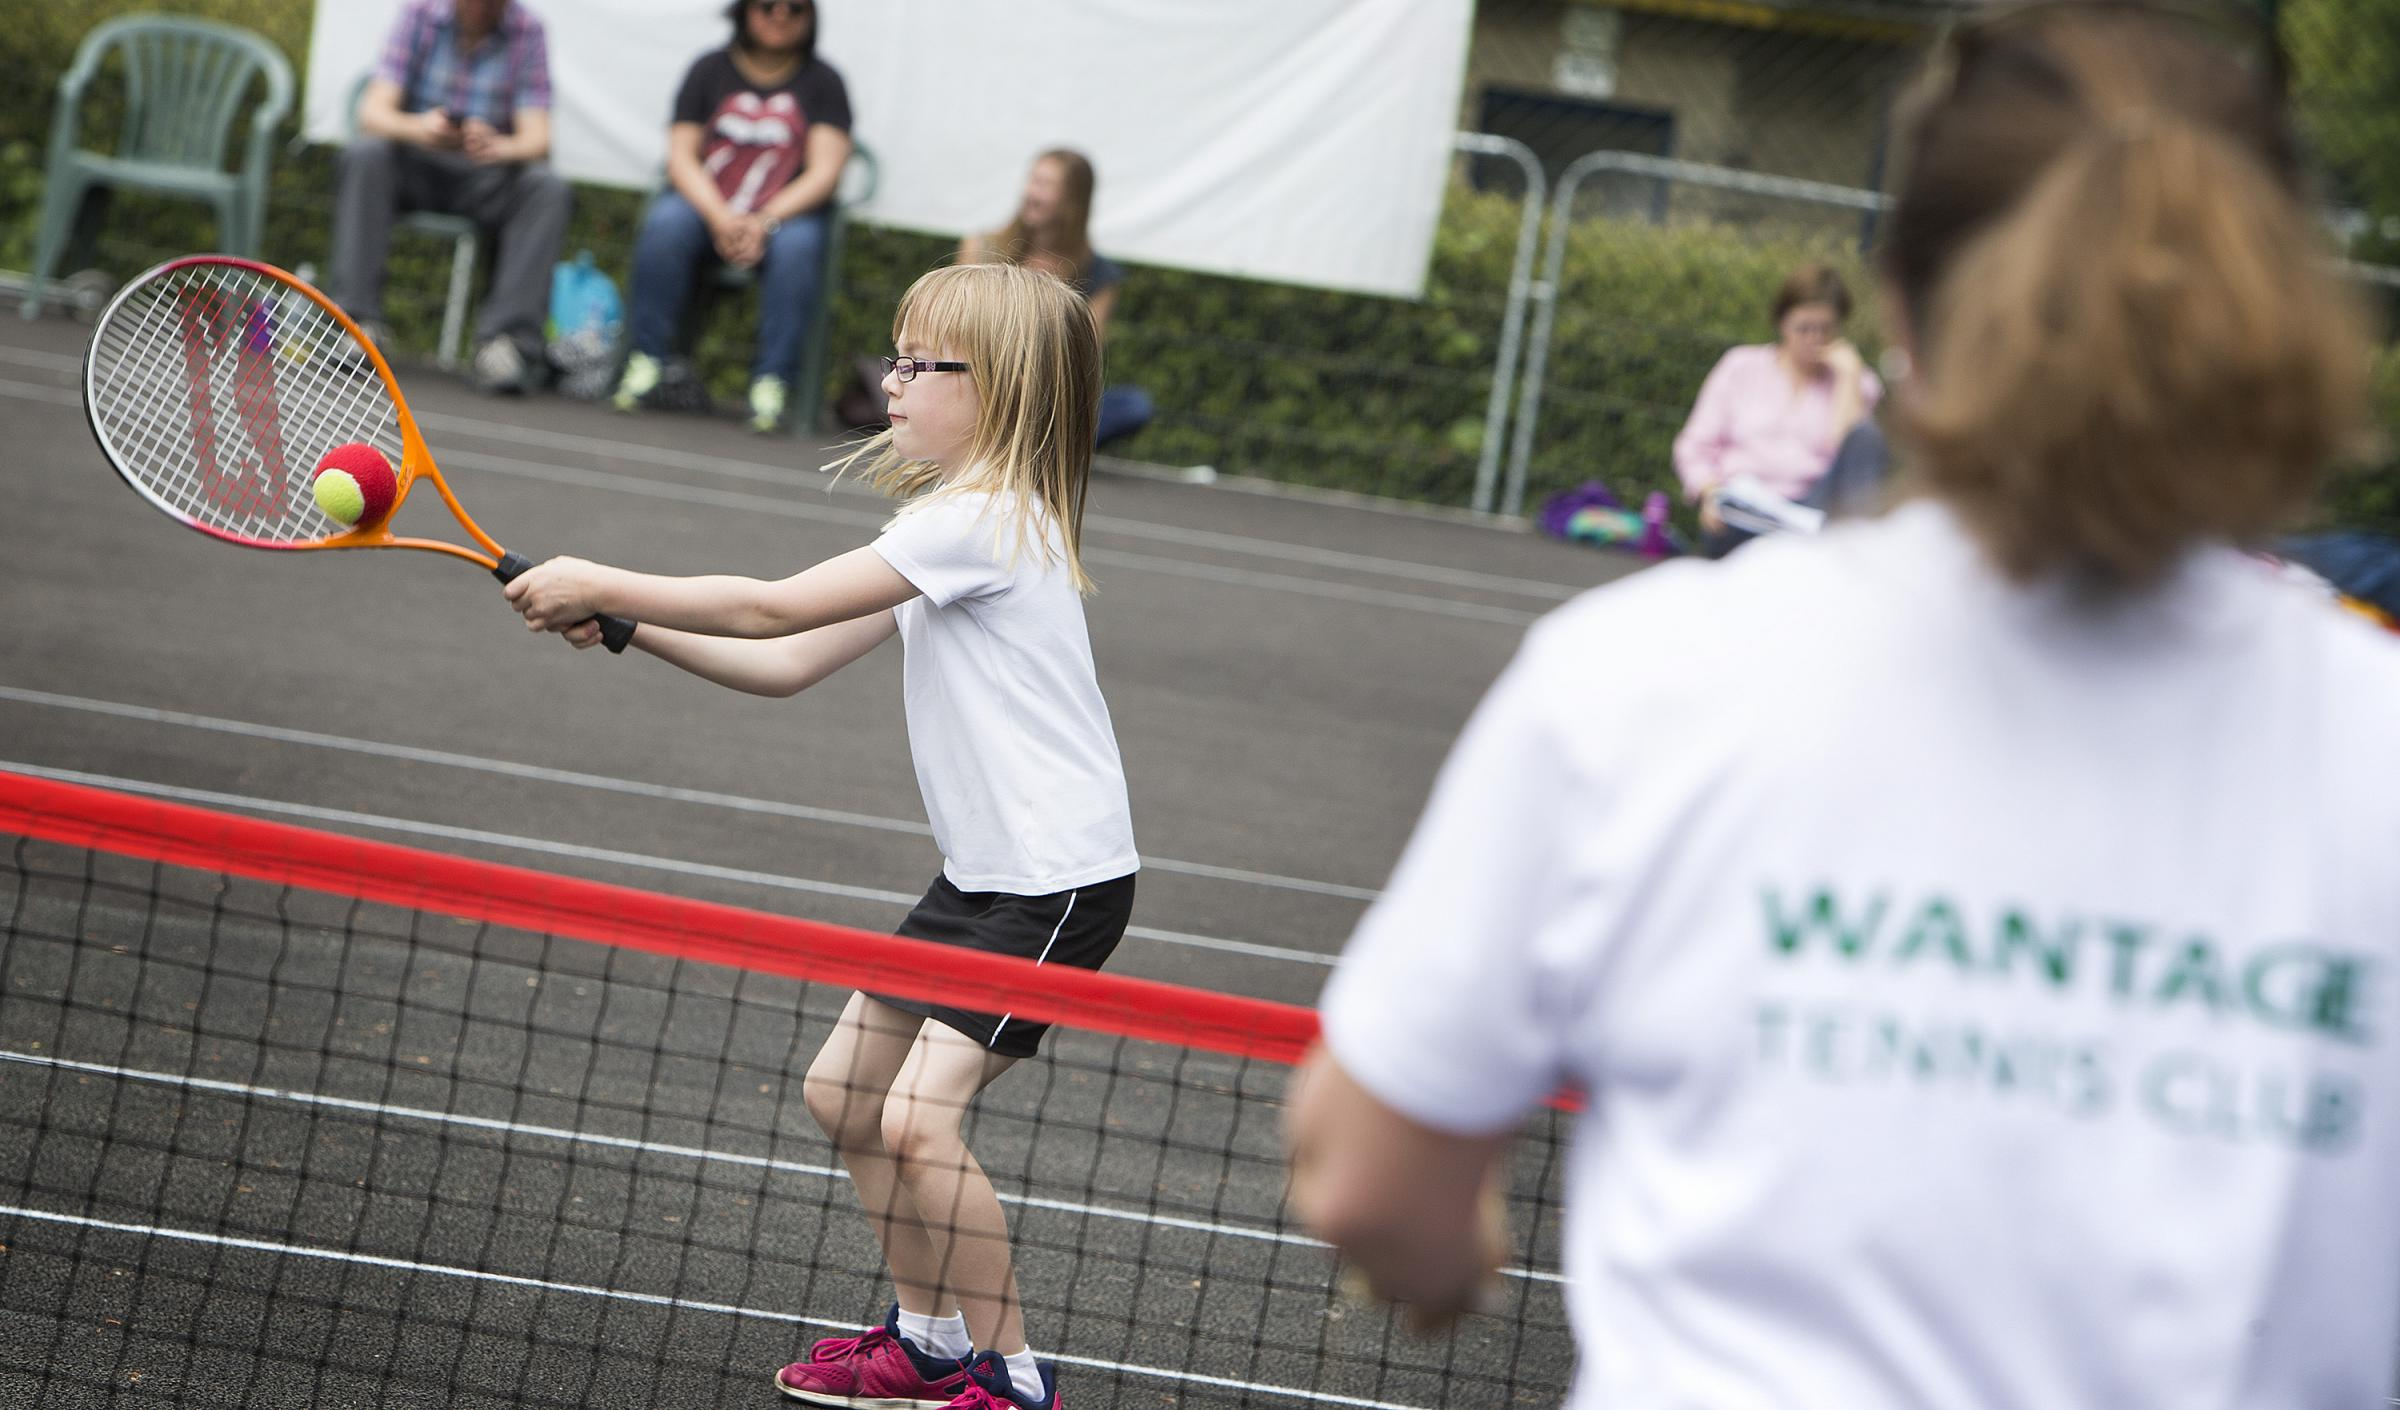 Have-a-go fun at Wantage Tennis Club: six-year-old Ruby Gniadek-Pitt working on back-hand technique with junior liaison officer Sue Cronin. Picture by Damian Halliwell